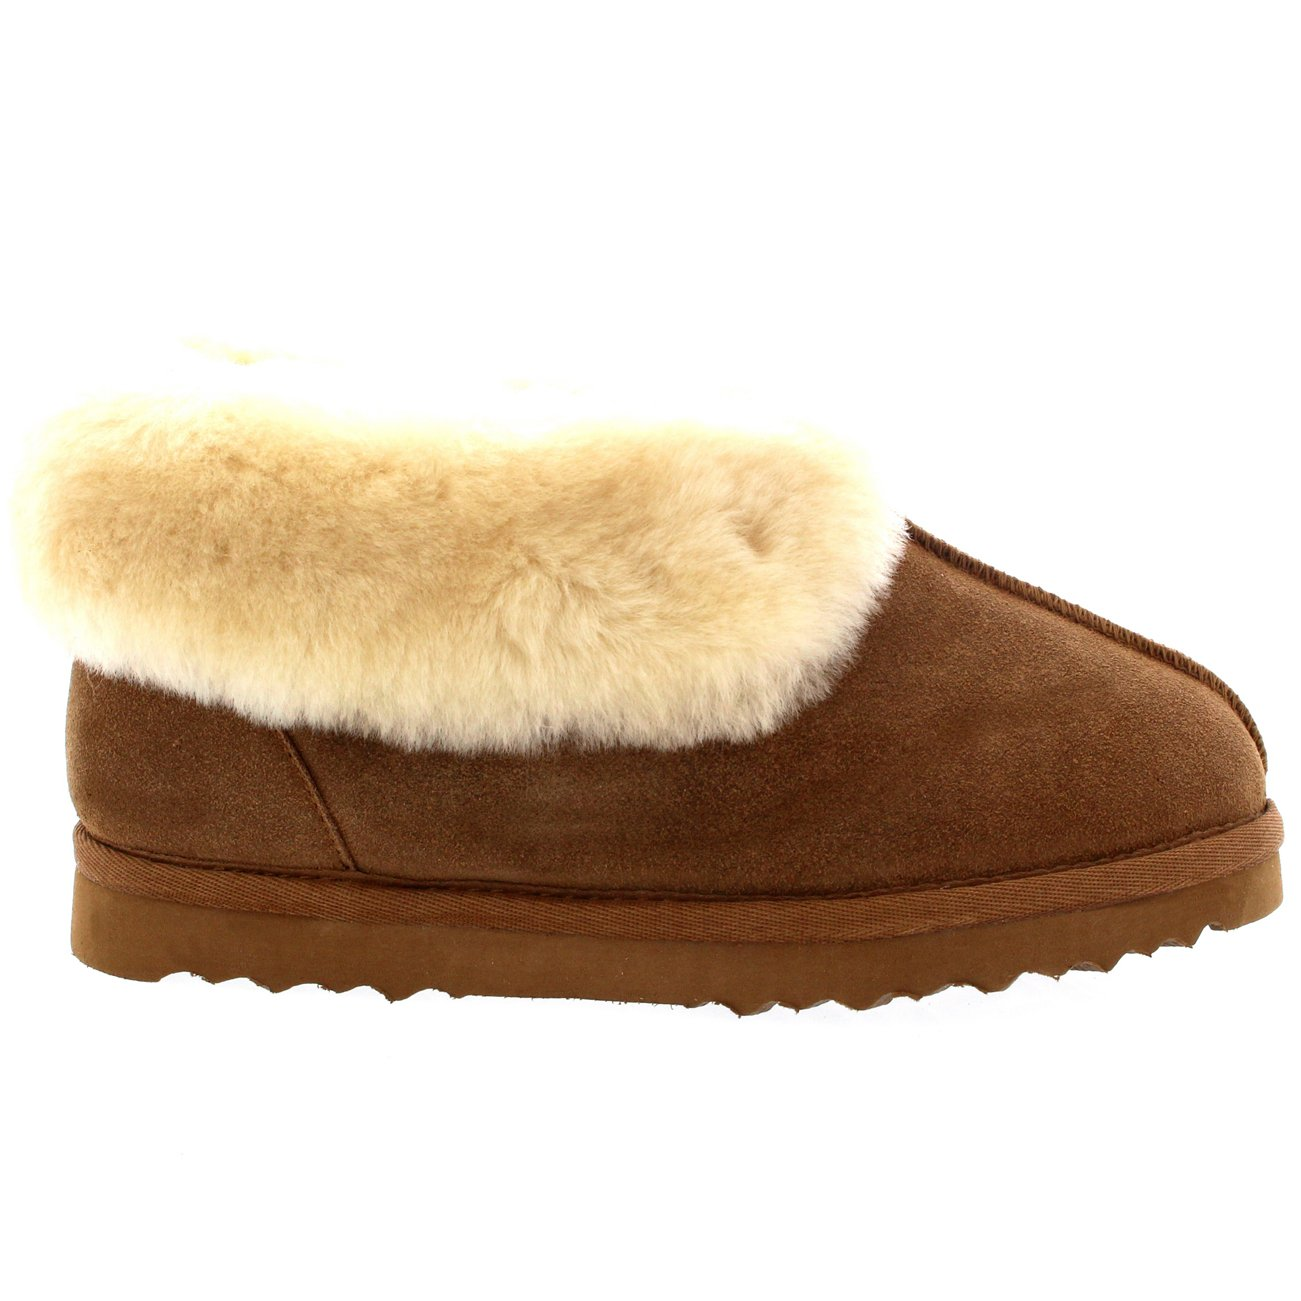 00f7f6be11053 POLAR Womens Real Suede Australian Lined Warm House Slipper Boots:  Amazon.co.uk: Shoes & Bags